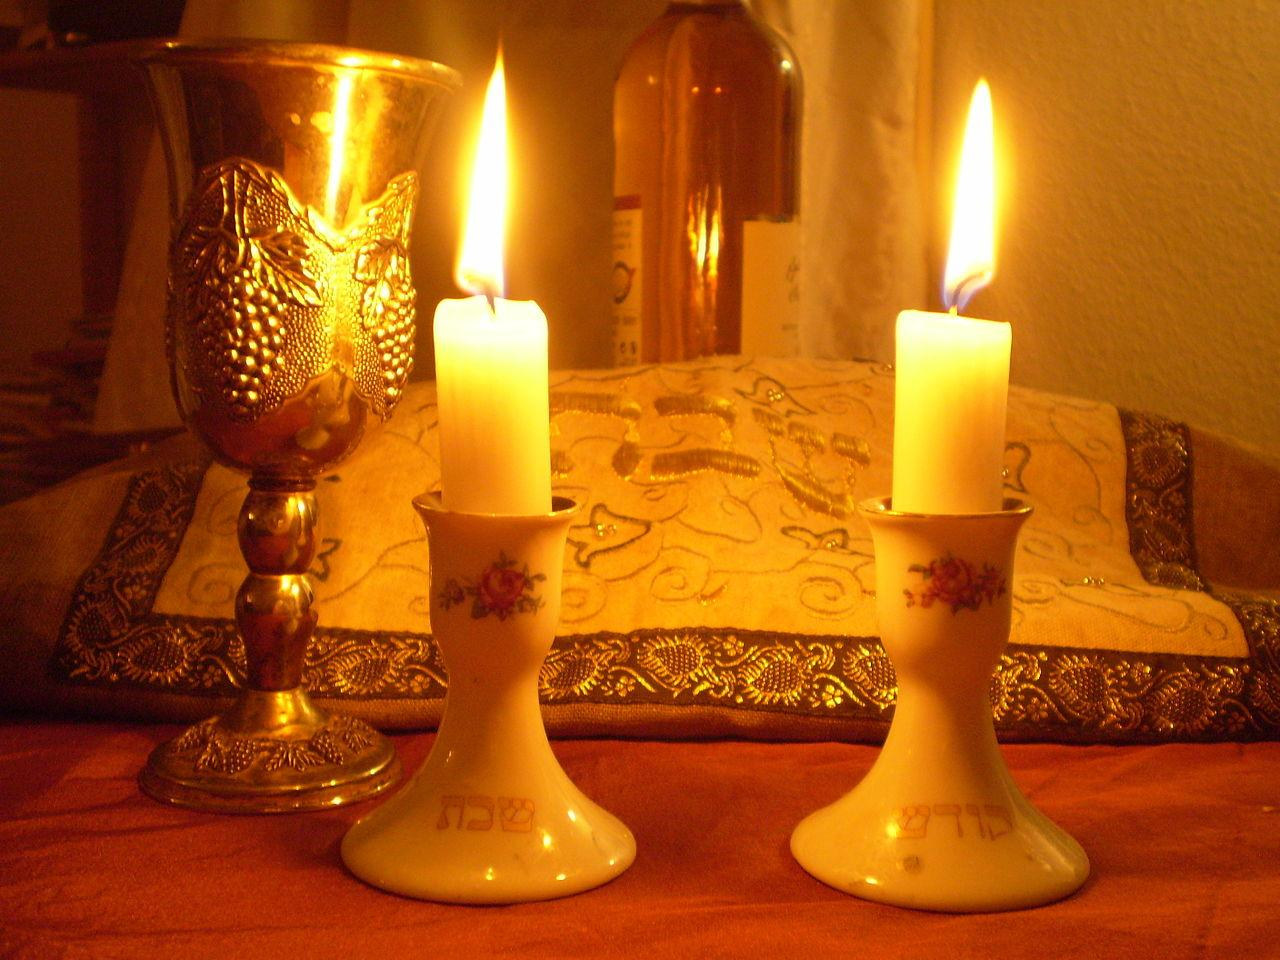 Candles and traditional bread, Challah, are staples on Shabbat, a holiday that the Jewish club will educate about.